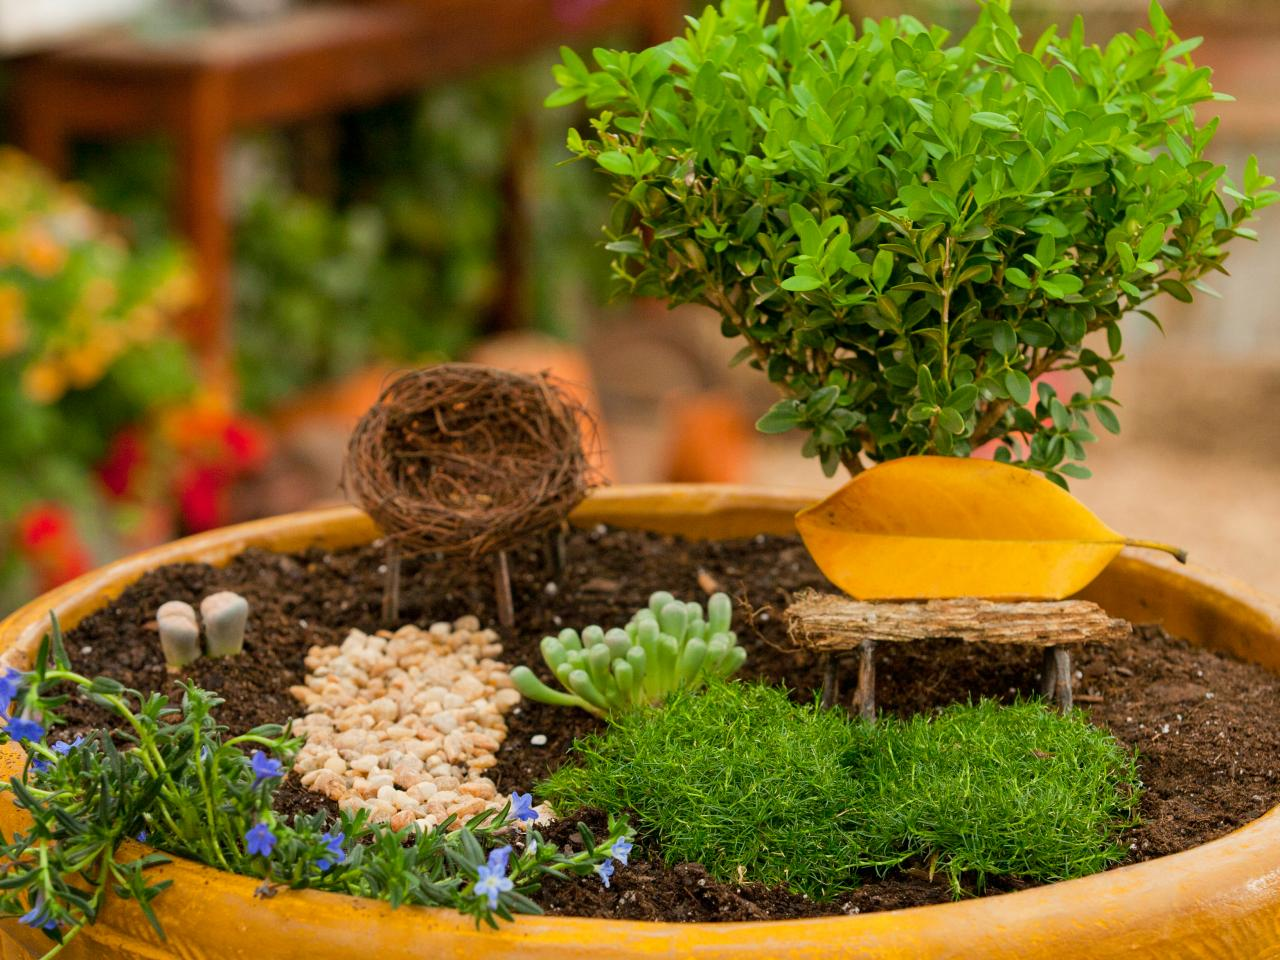 How to make fairy garden container?